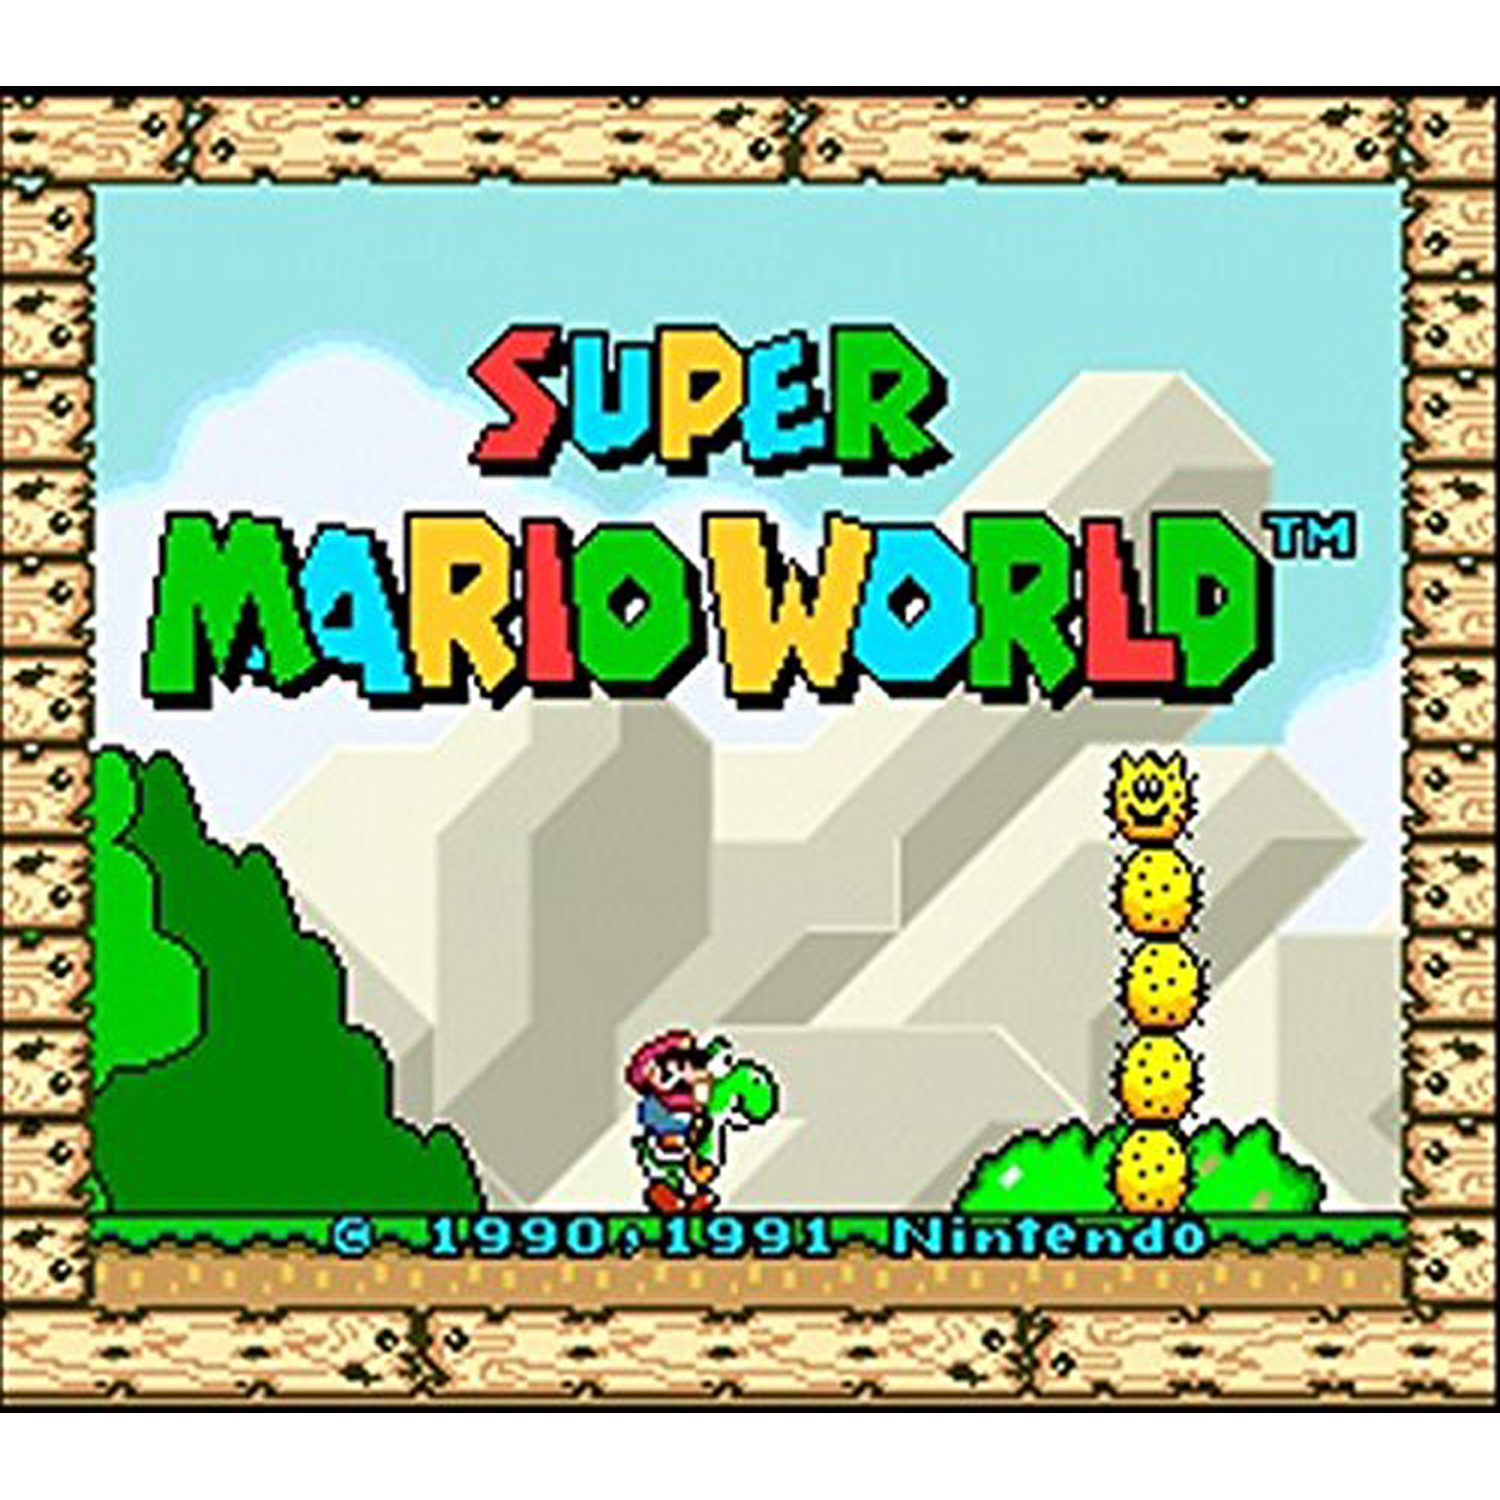 Super Mario World (New 3DS Family Only), Nintendo, Nintendo 3DS, [Digital Download], 0004549668144